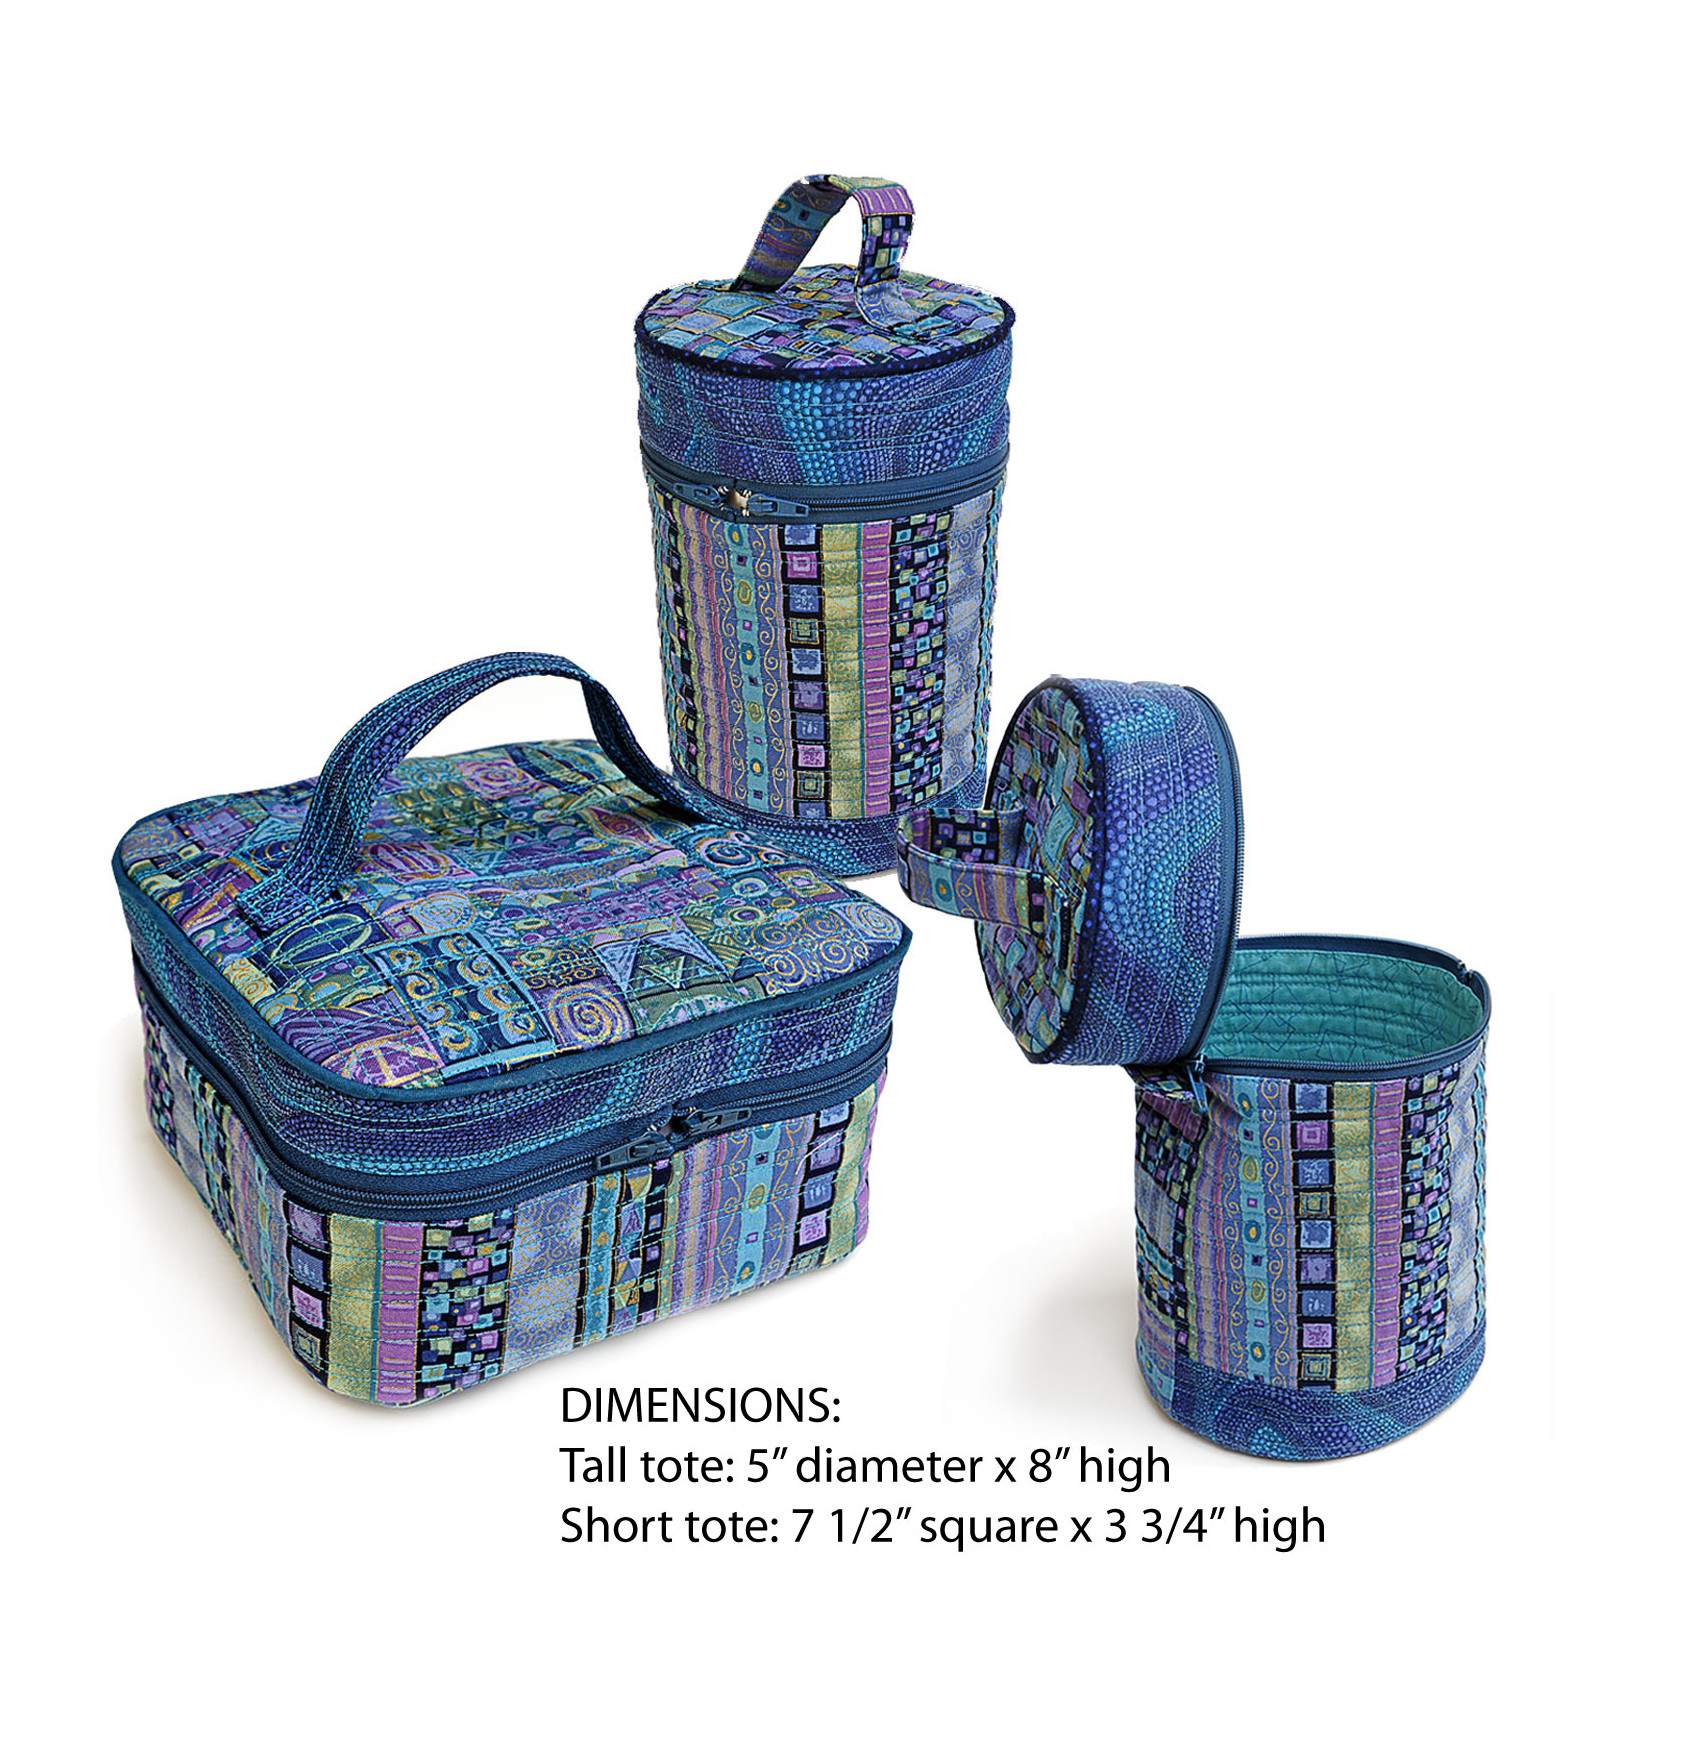 009 Travel Totes - Blue